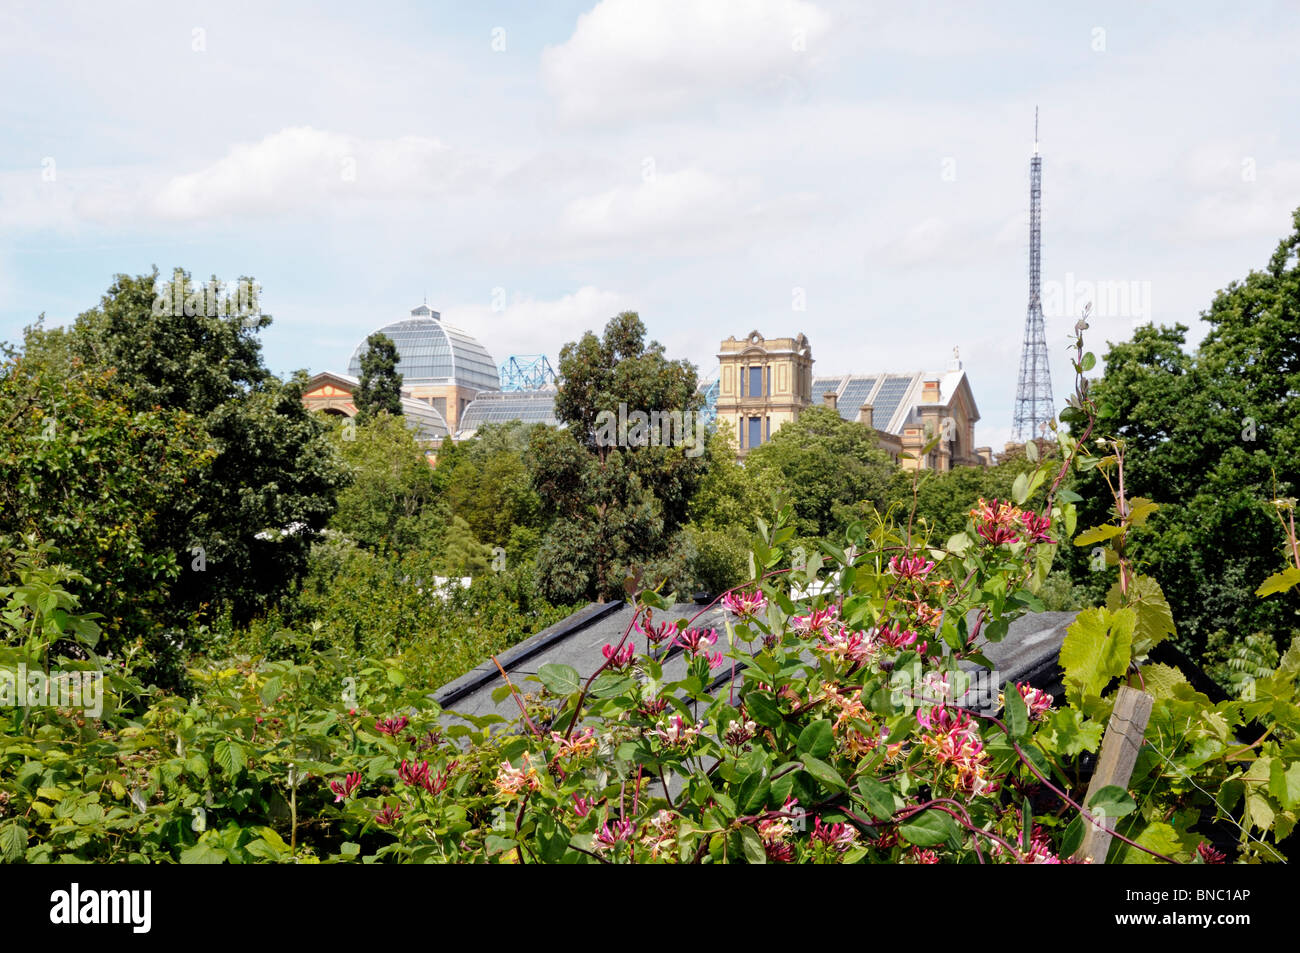 Alexandra Palace Allotments an urban allotment site with views of the Palace in North London, Honeysuckle in foreground - Stock Image